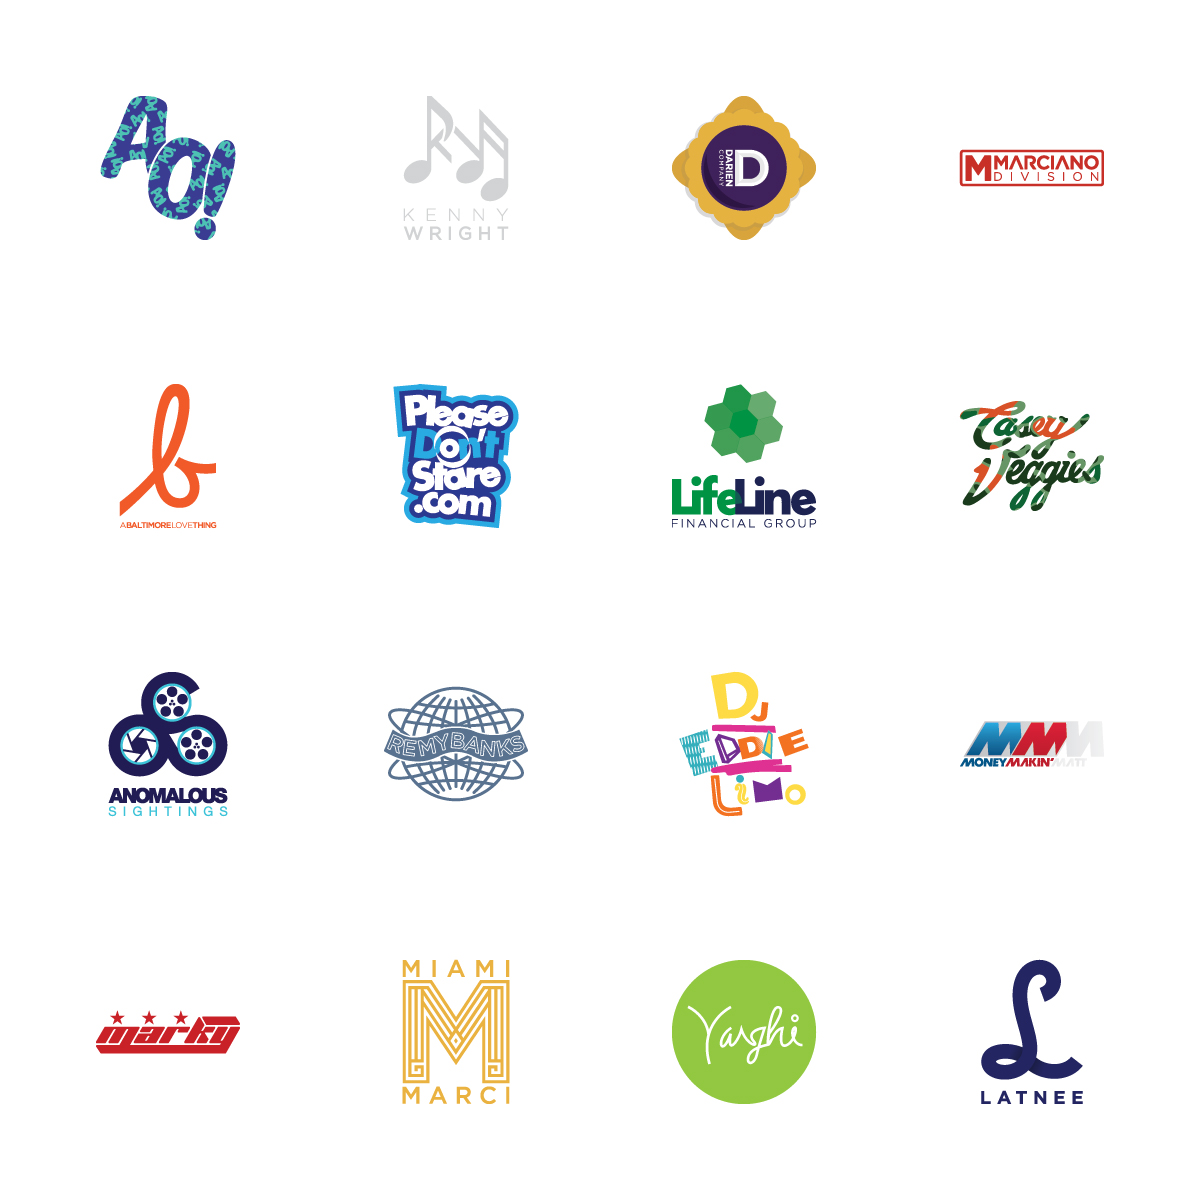 cherrycollaborative: A sampling some of the many logos designed by Cherry Collaborative in the last 6 months… More out there and always more on the way… www.CherryCo.jp For design inquires contact Cherry@CherryCo.jp